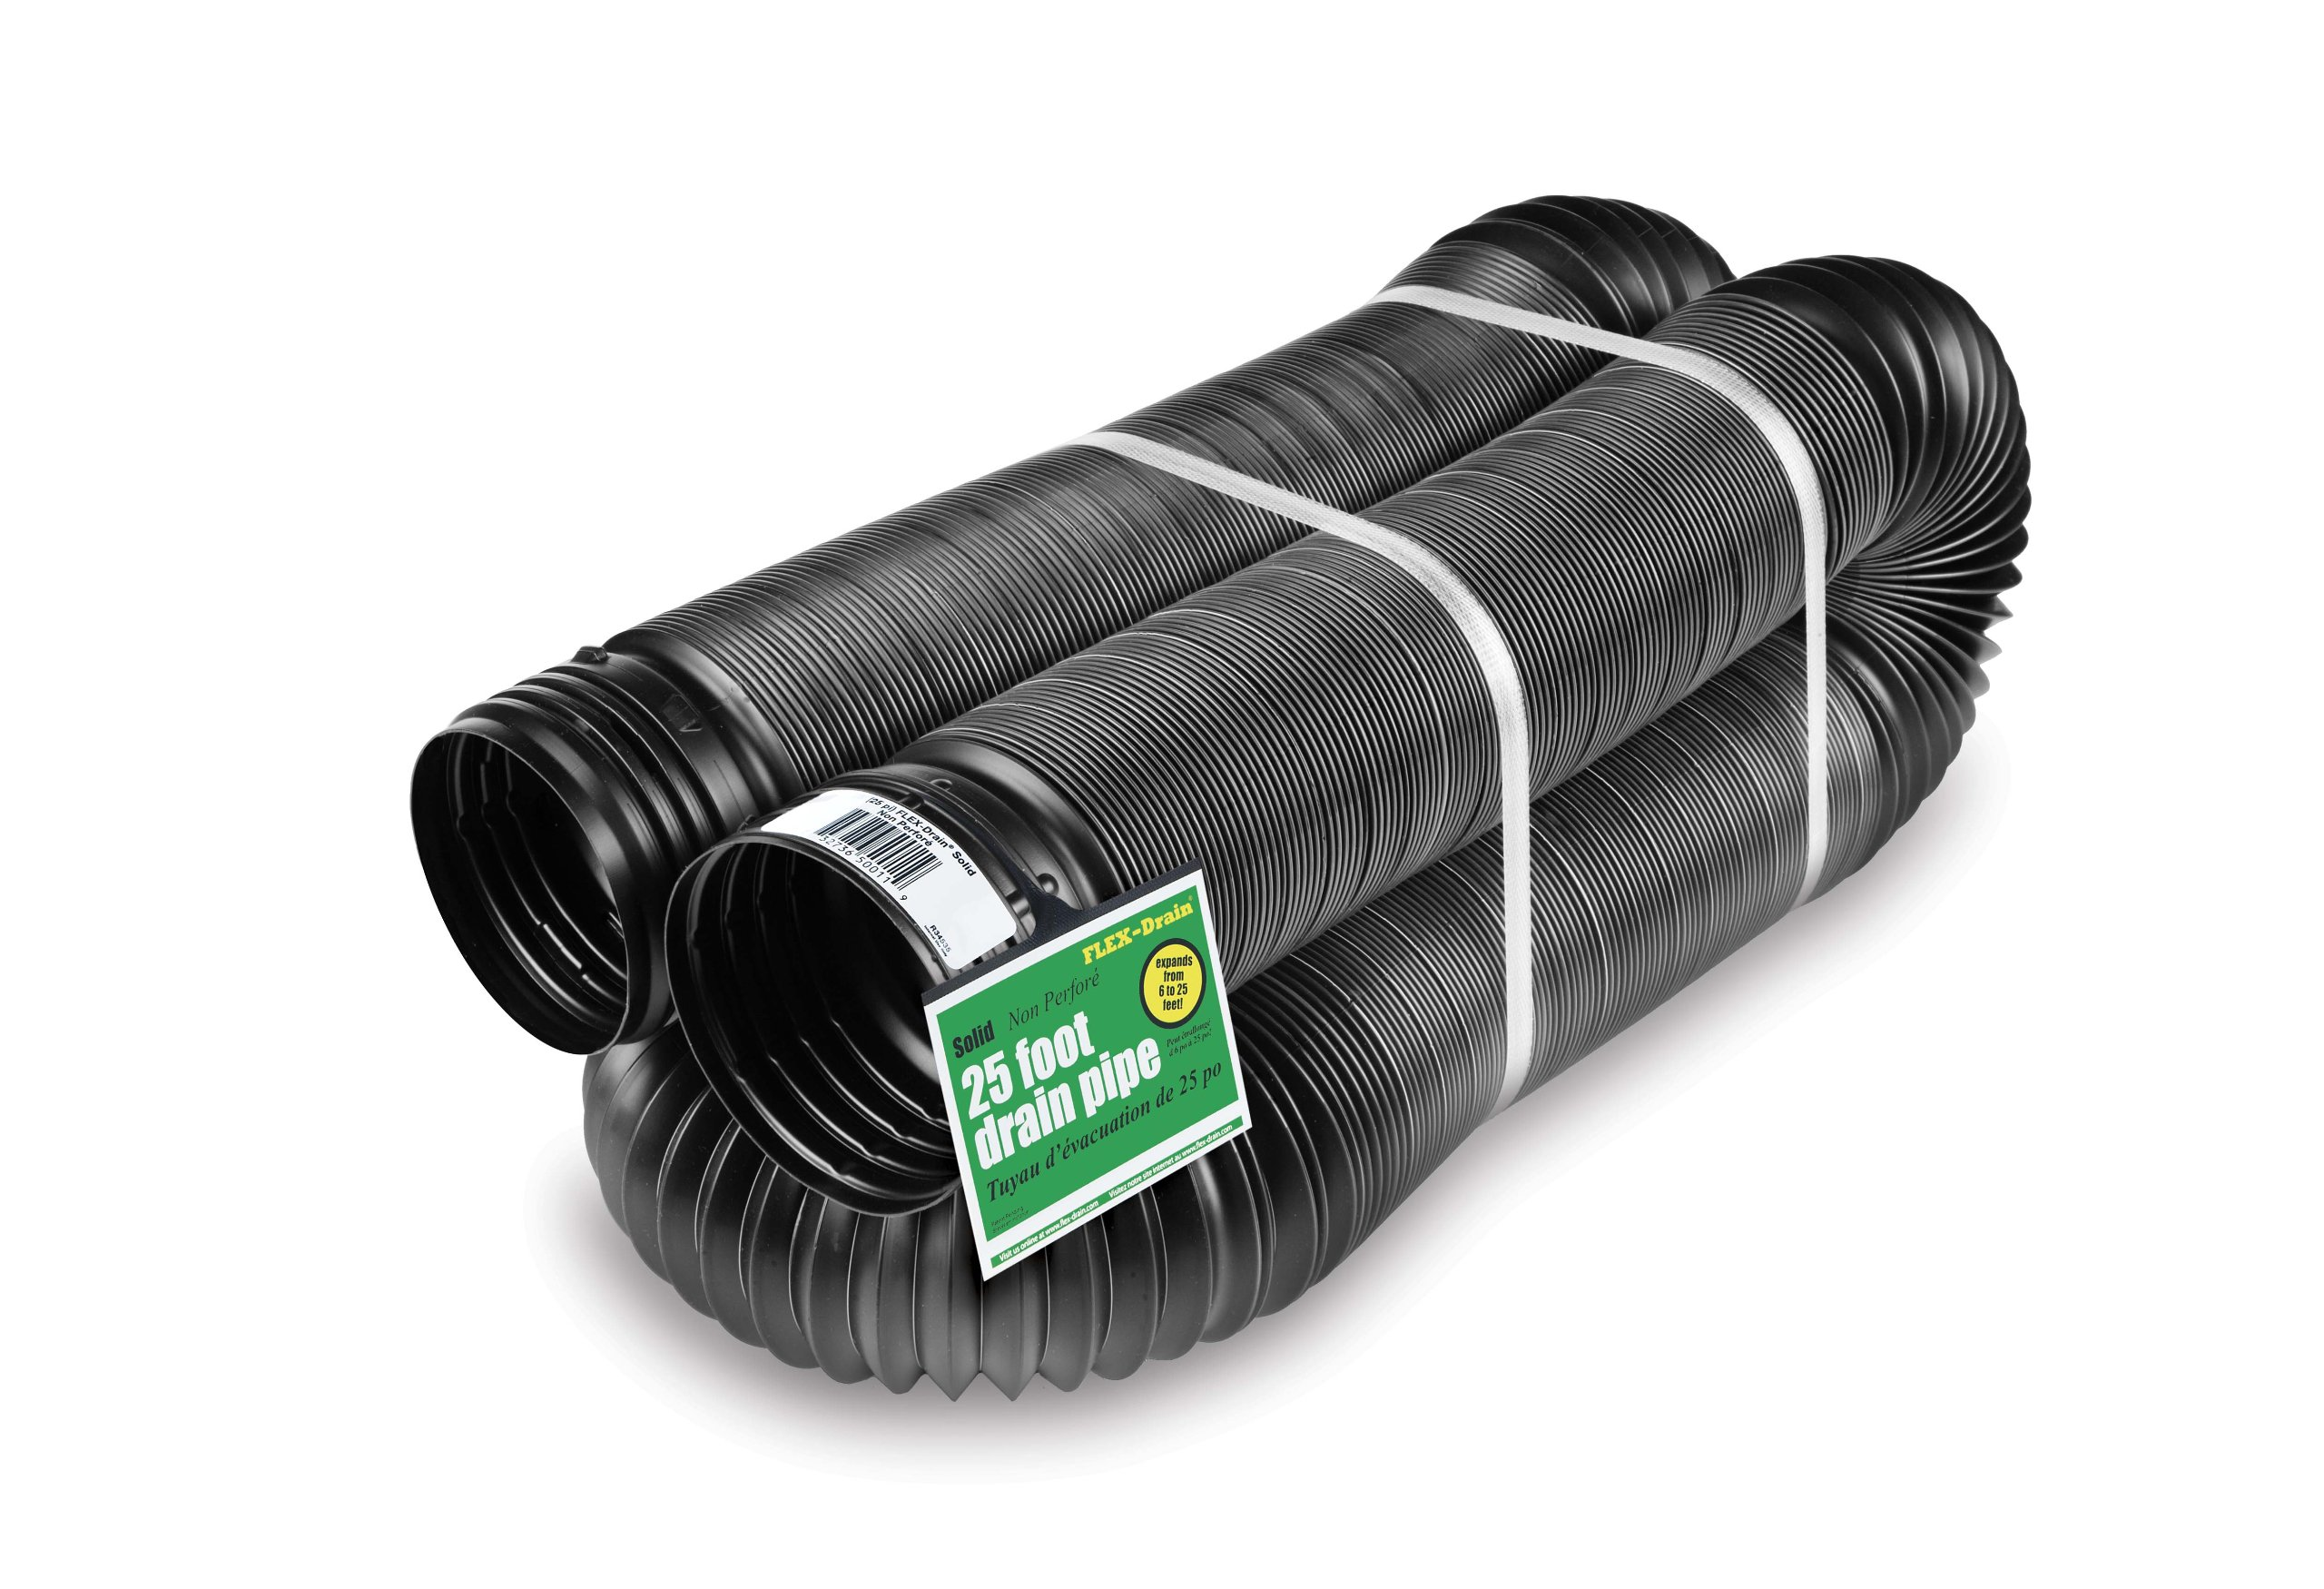 Flex drain flexible expandable landscaping